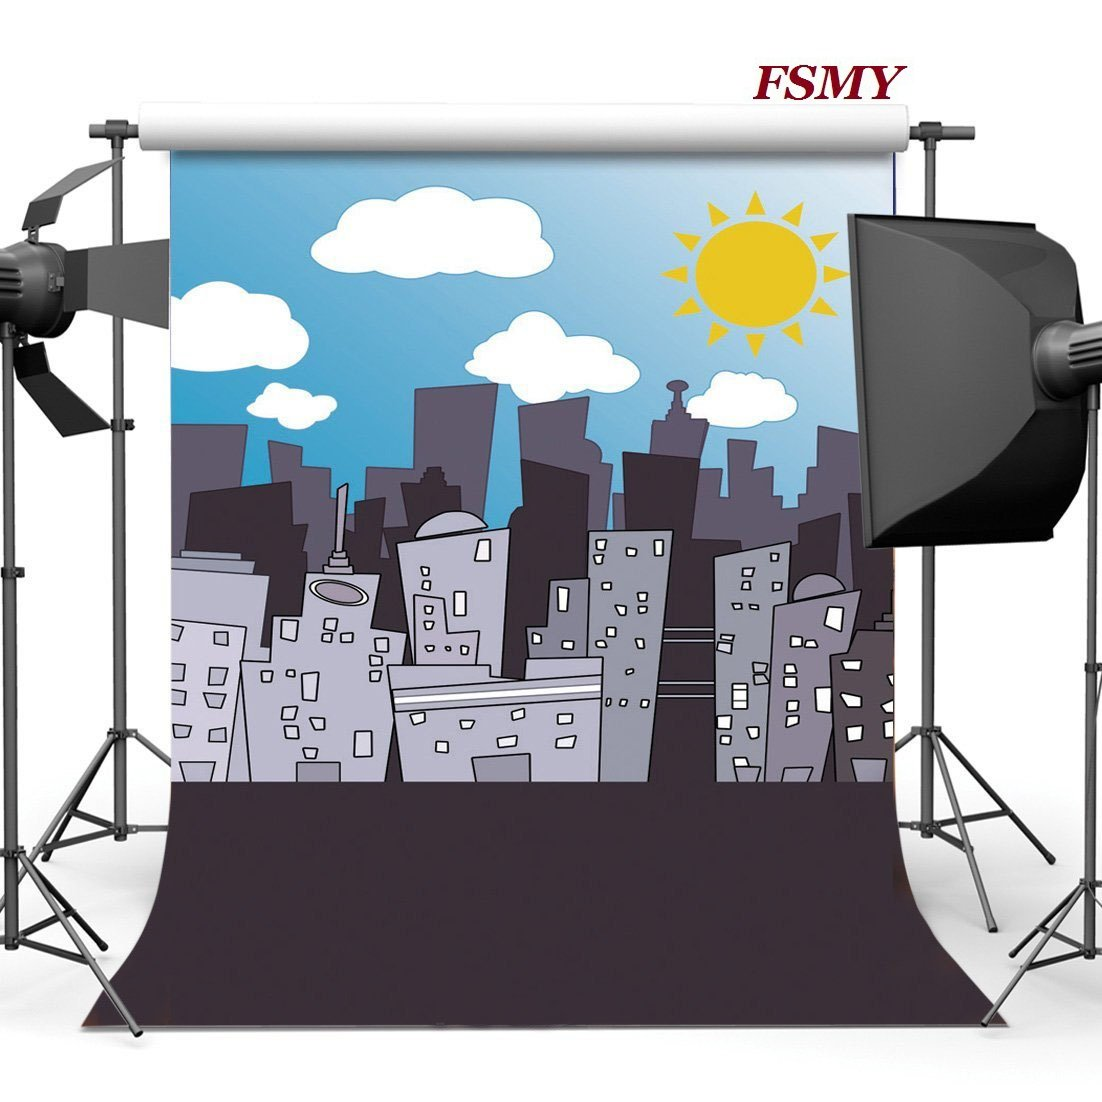 FSMY 7x5ft Superhero Themed Photography Backdrop, Customized Skyline Photo Background for Parties Studio Props(Color 3) FOSHAN CO.LTD CJYX7X5.